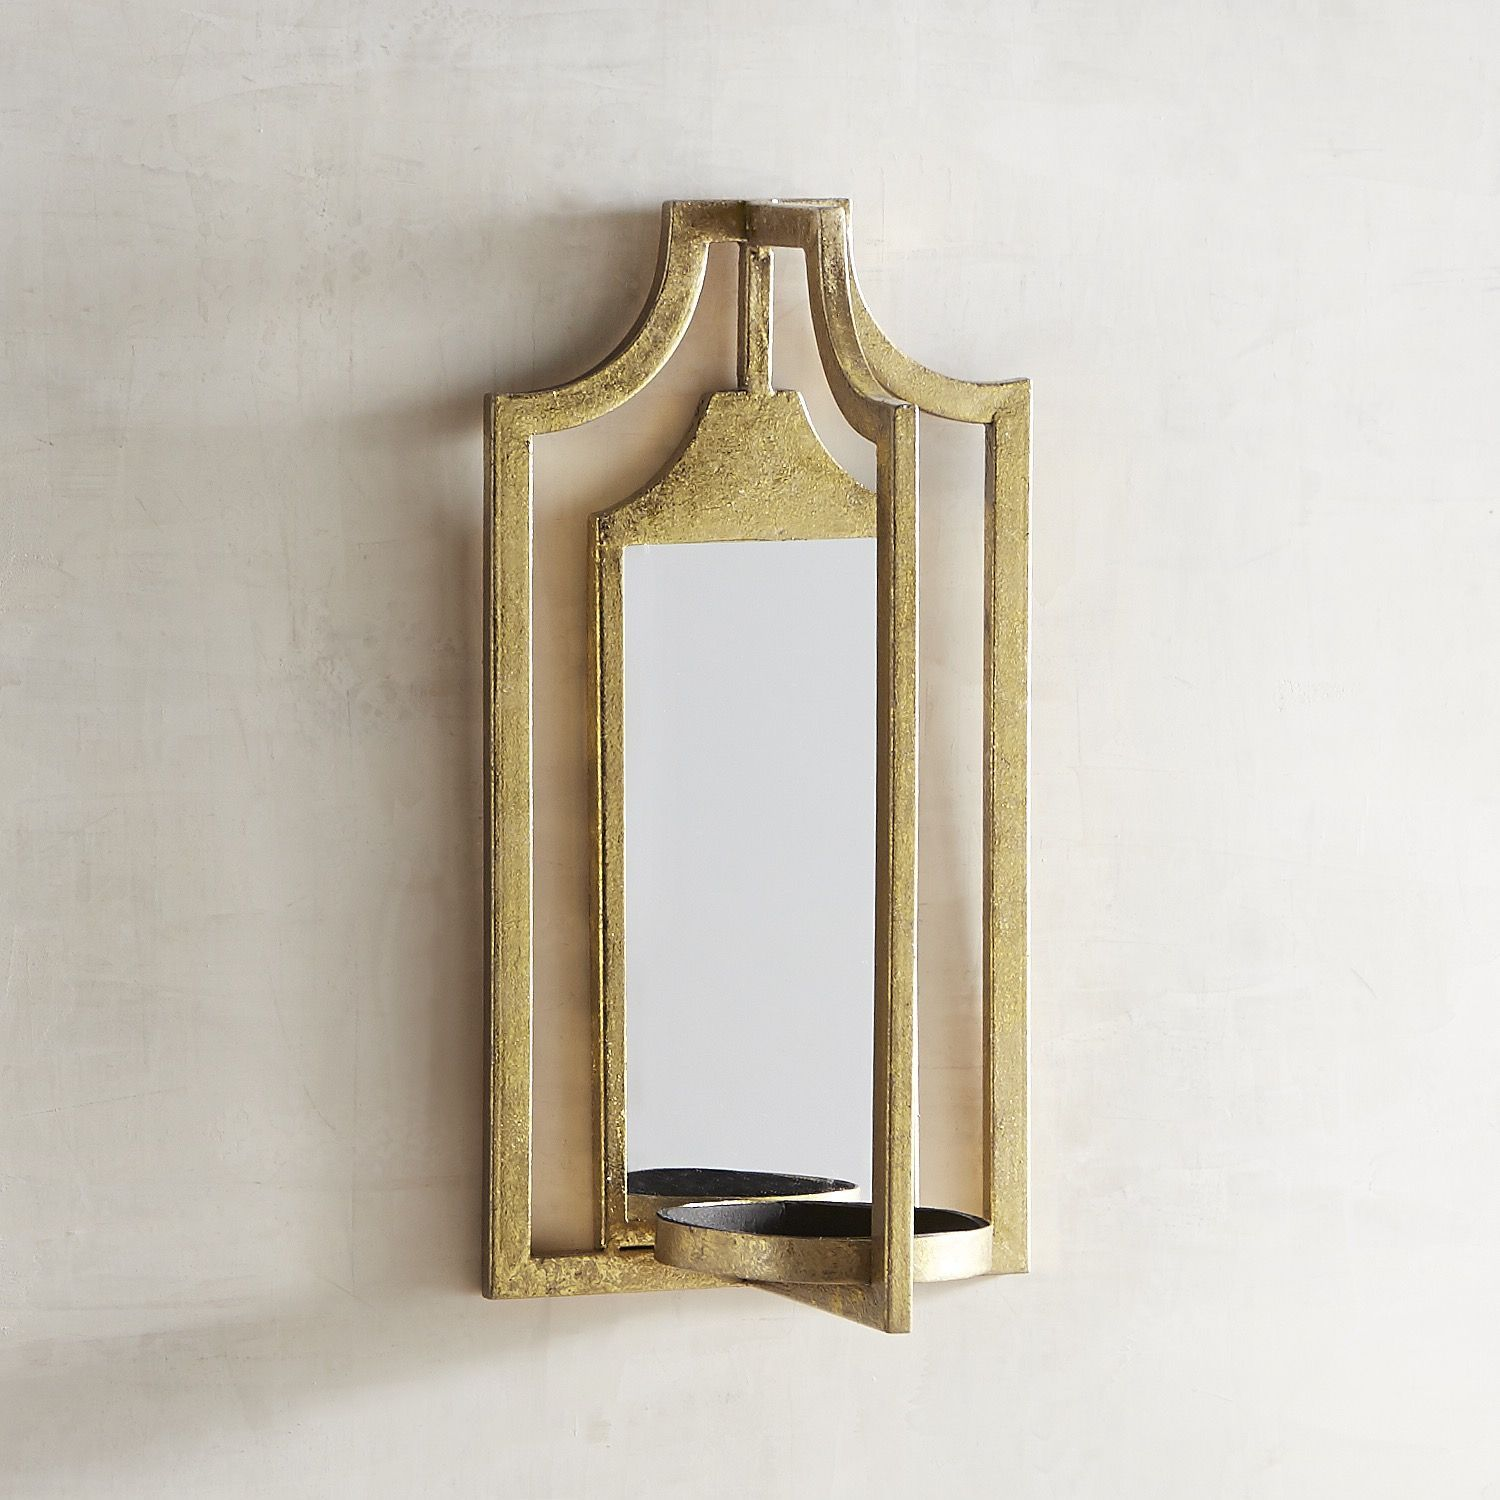 uk design candles mirror imports candle acanthus of pier pillar gold diamond ideas wall home best for pretentious framed lighting sconces sconce mirrored remodel holder holders two set prissy